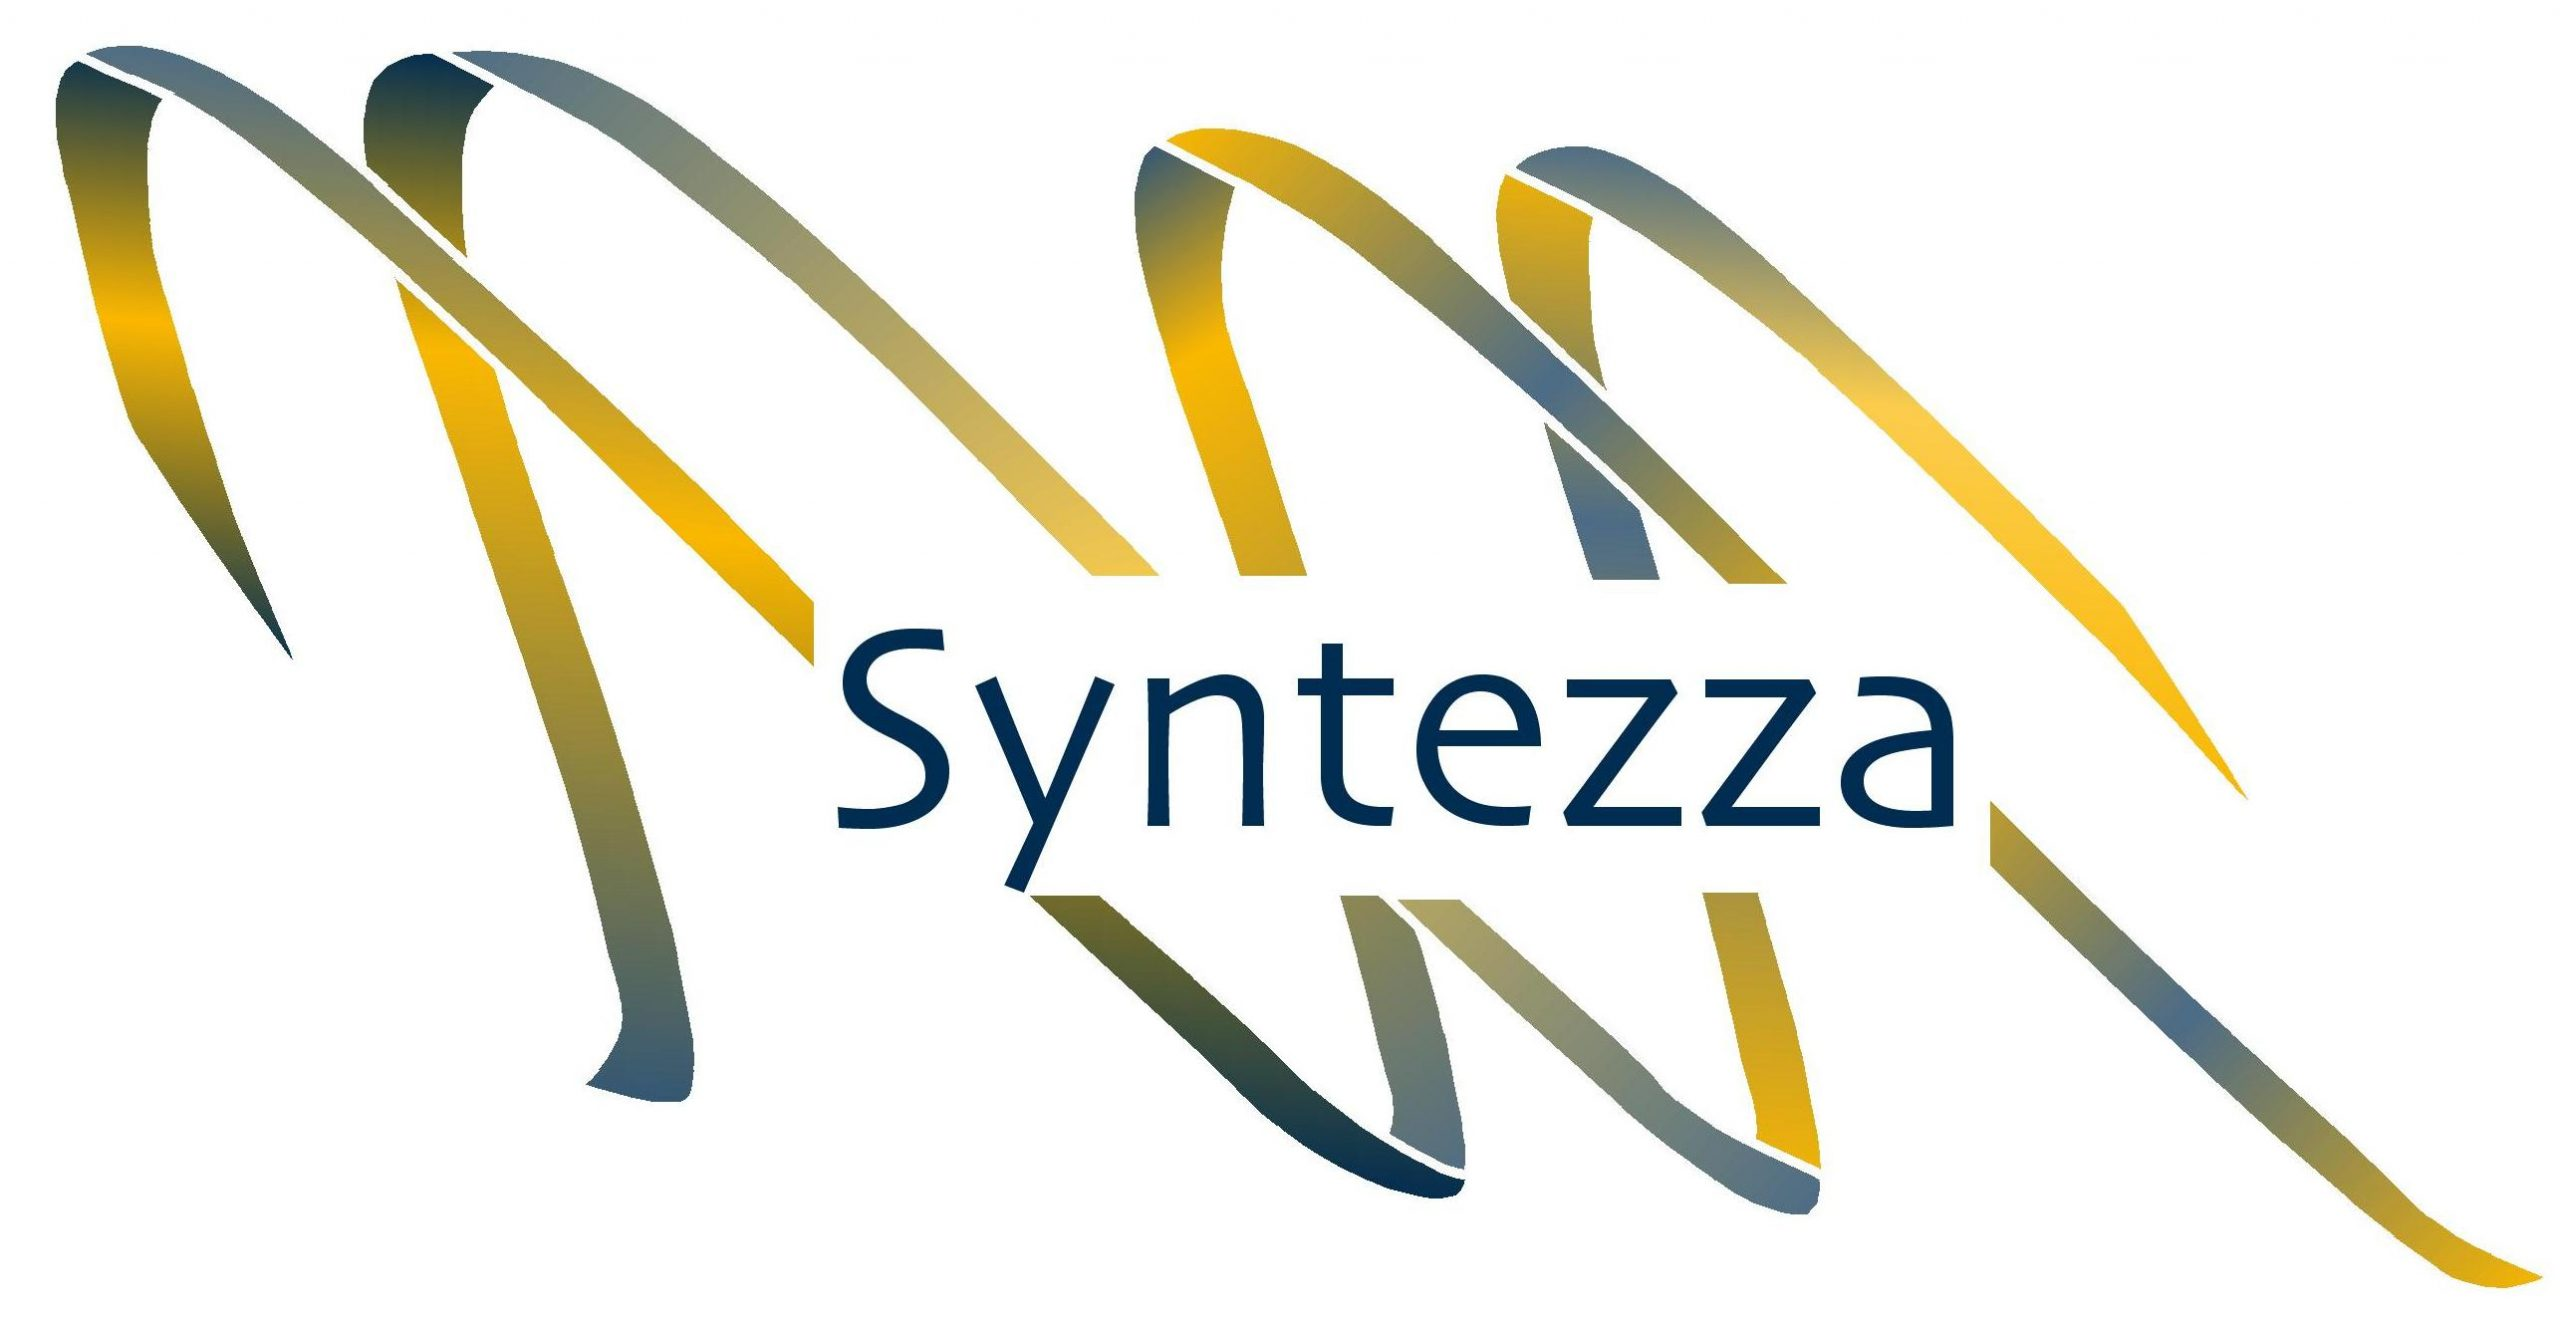 Syntezza logo 4 color